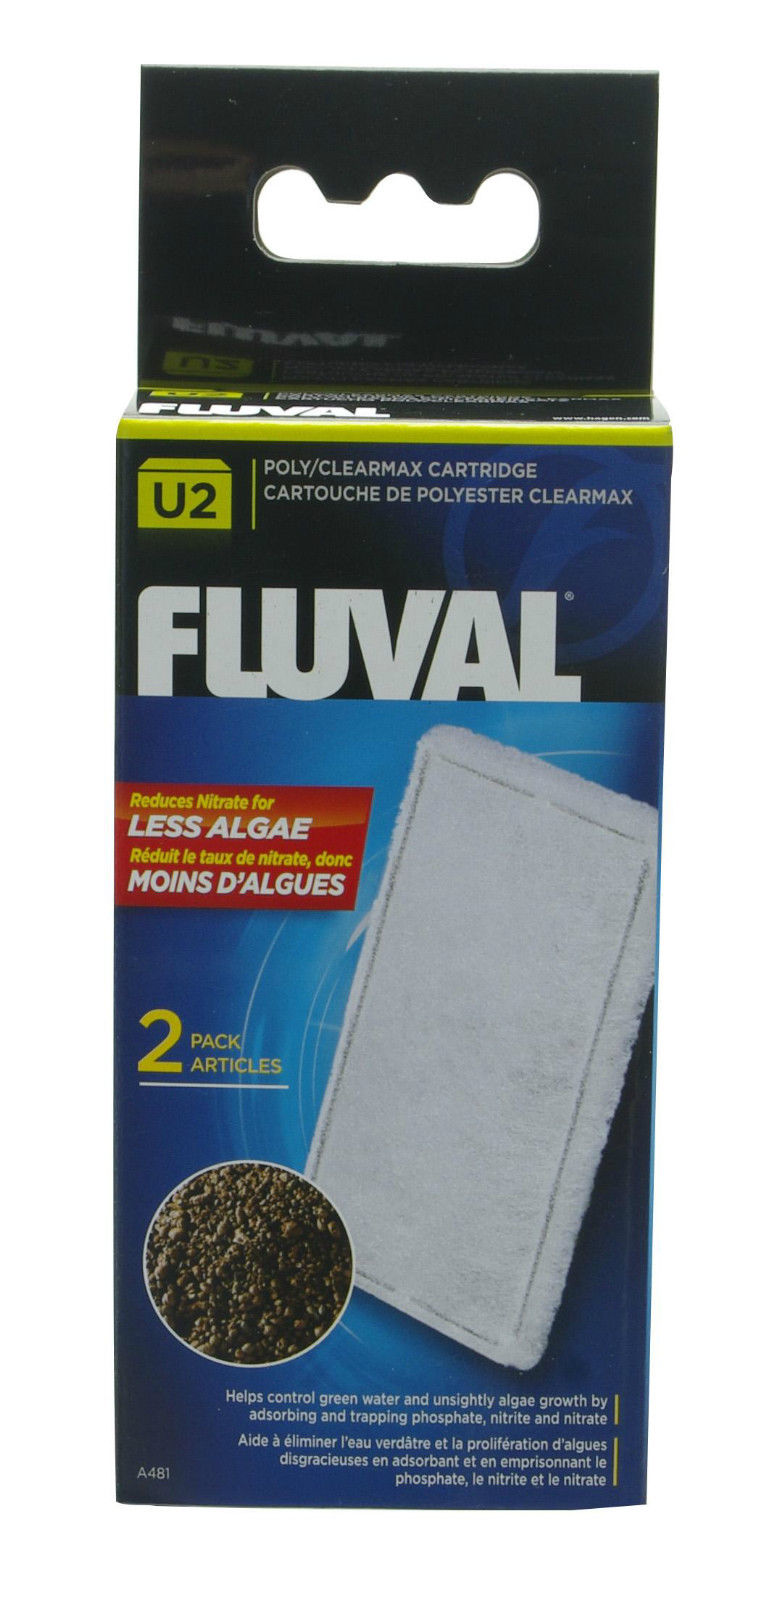 fluval u2 u3 u4 poly clearmax filter cartridge fish tank